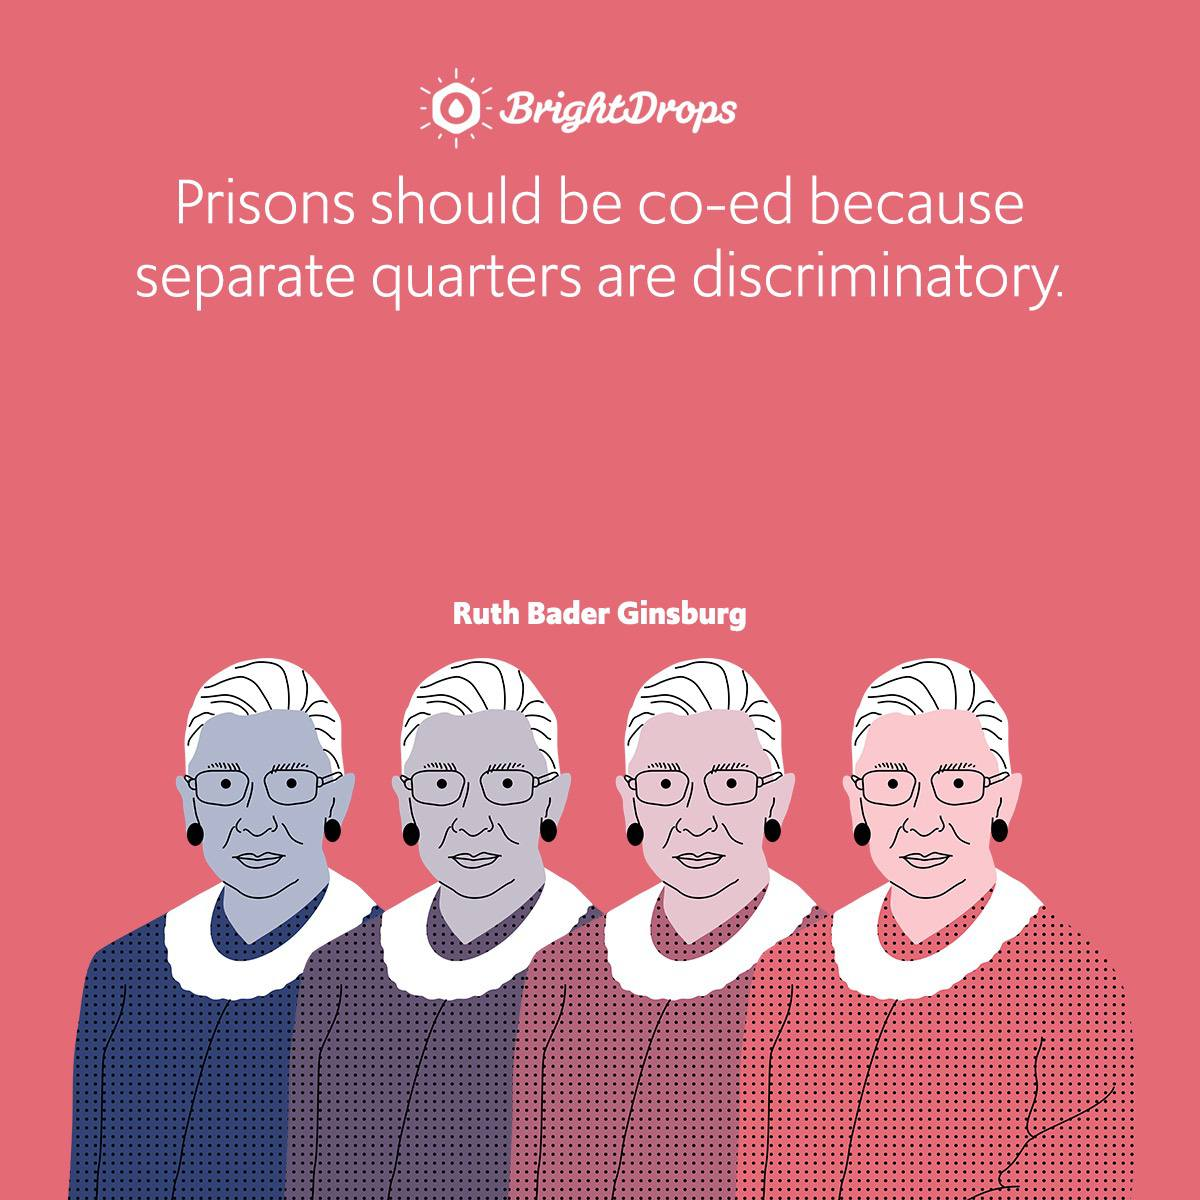 Prisons should be co-ed because separate quarters are discriminatory.